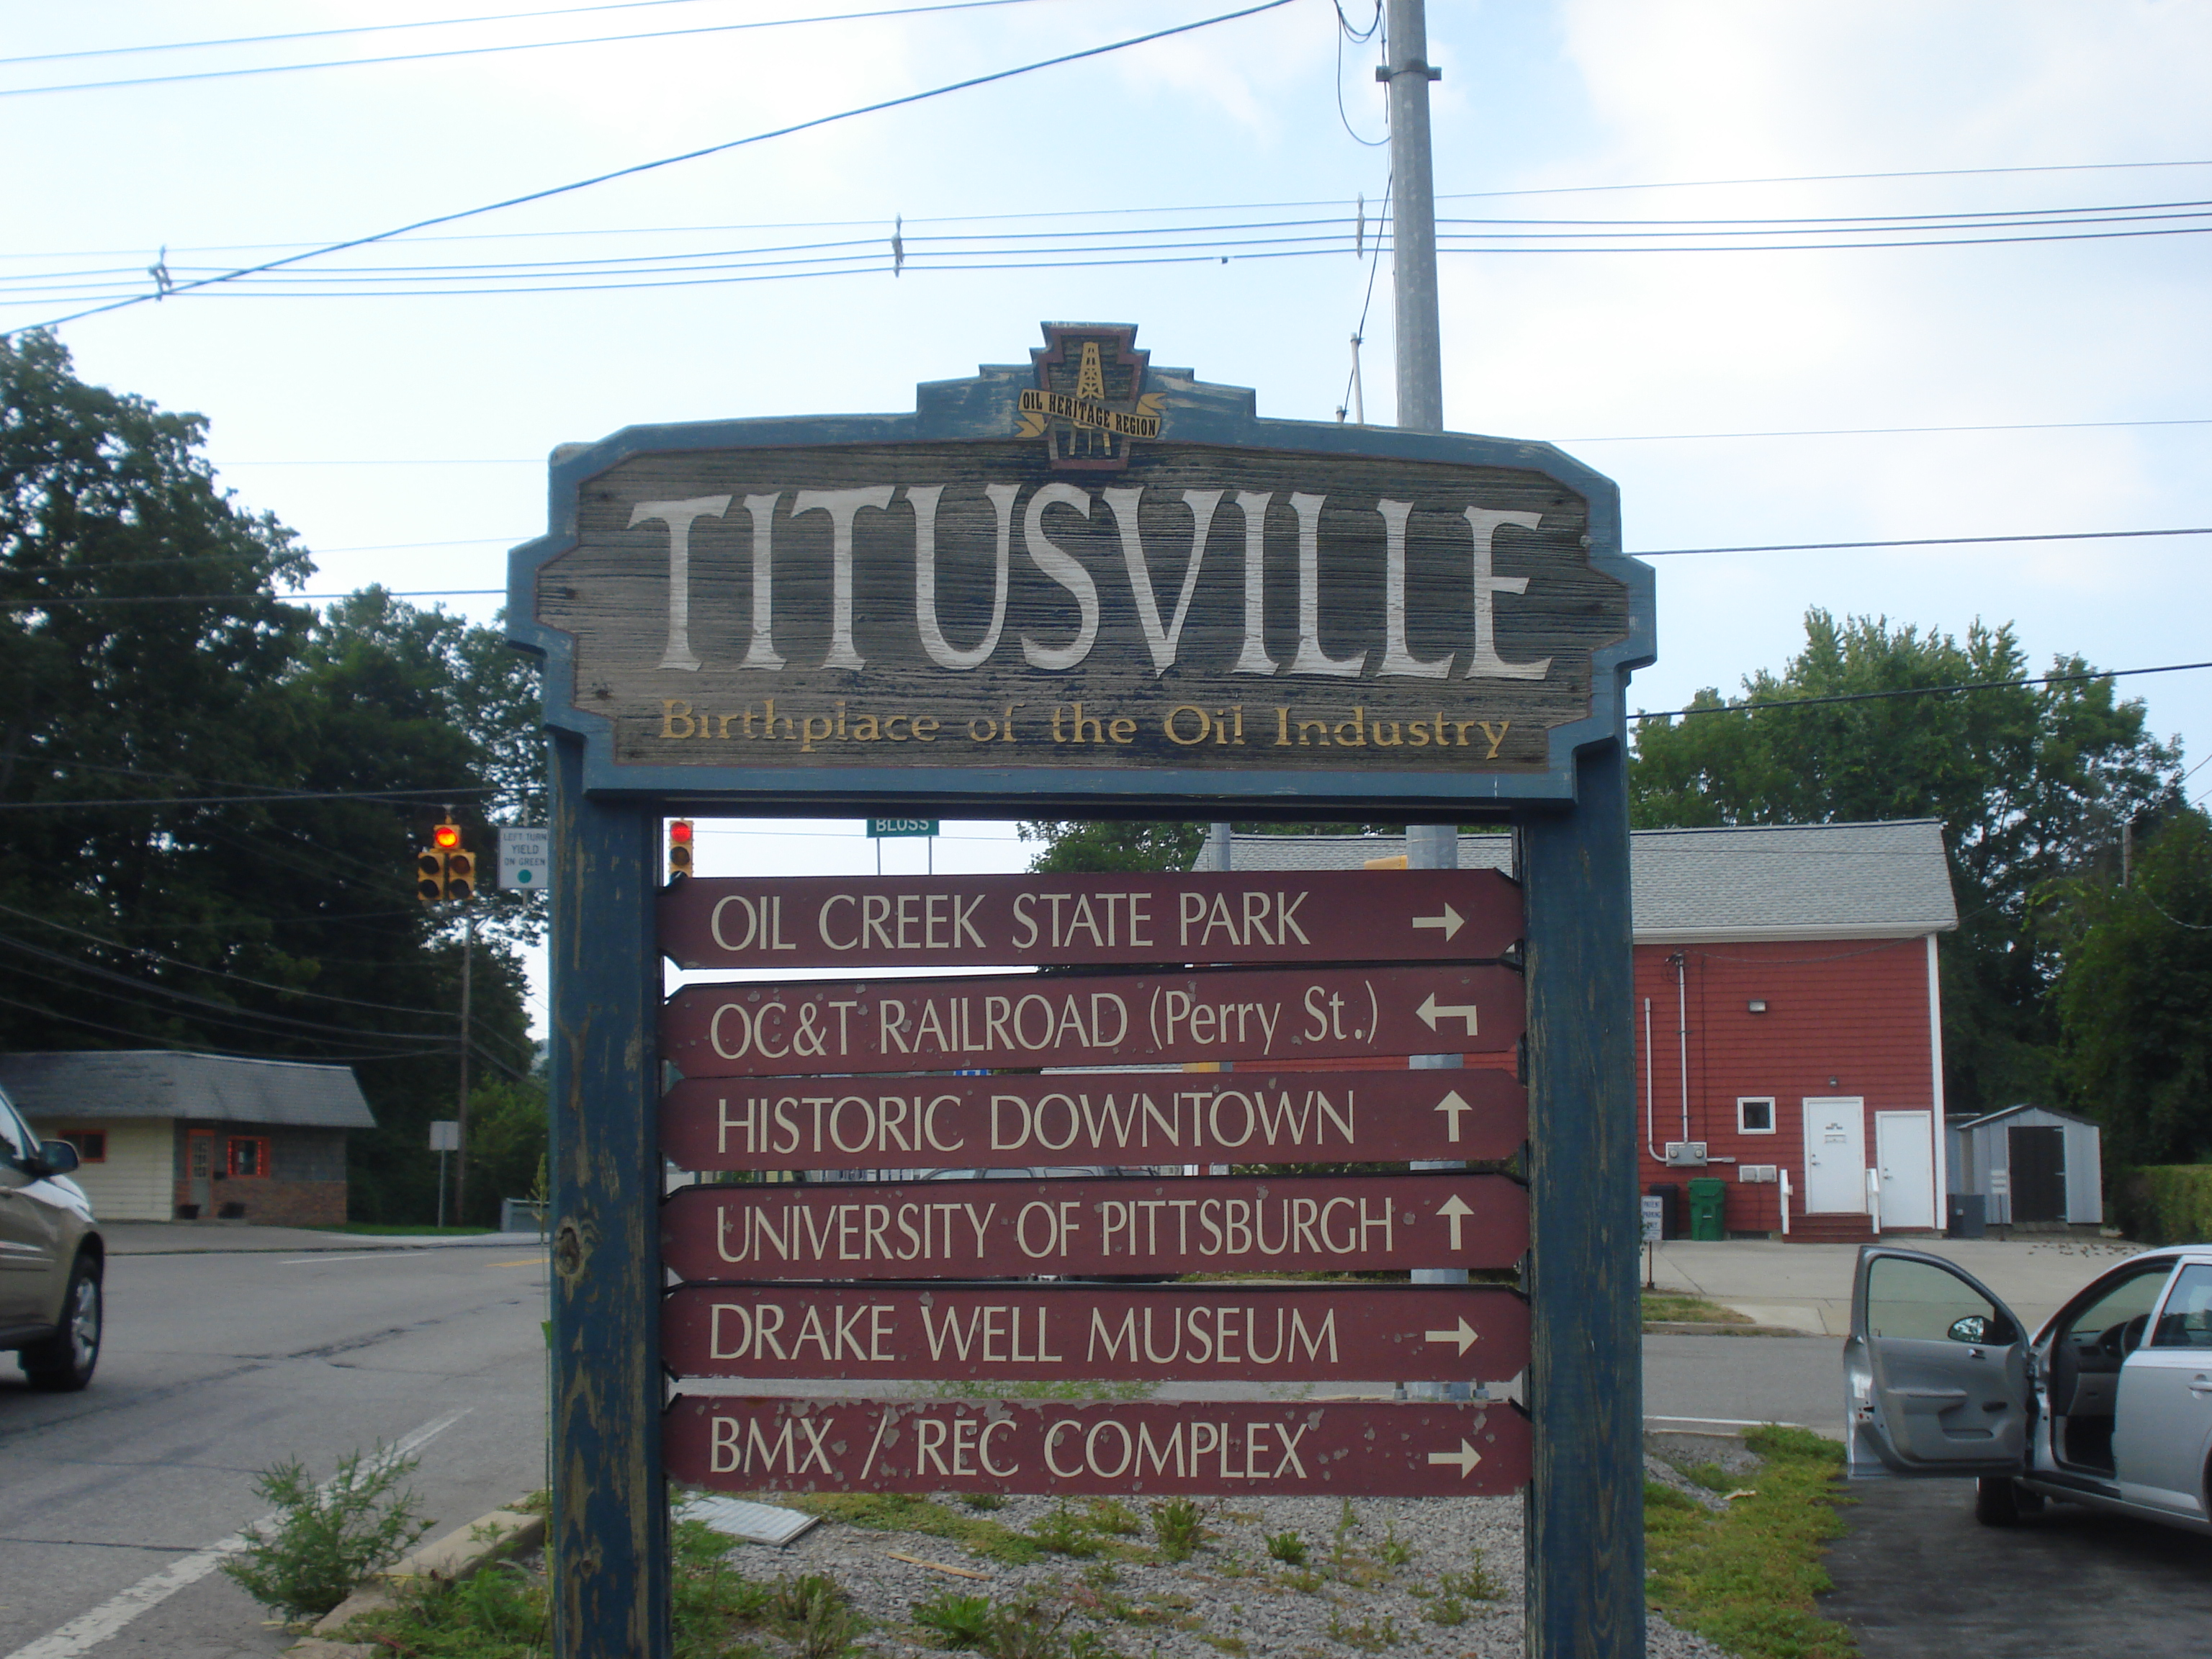 titusville dating Titusville army dating is fun and easy on militarysinglescom join now to meet army singles nearby or stationed overseas chat now on video chat.